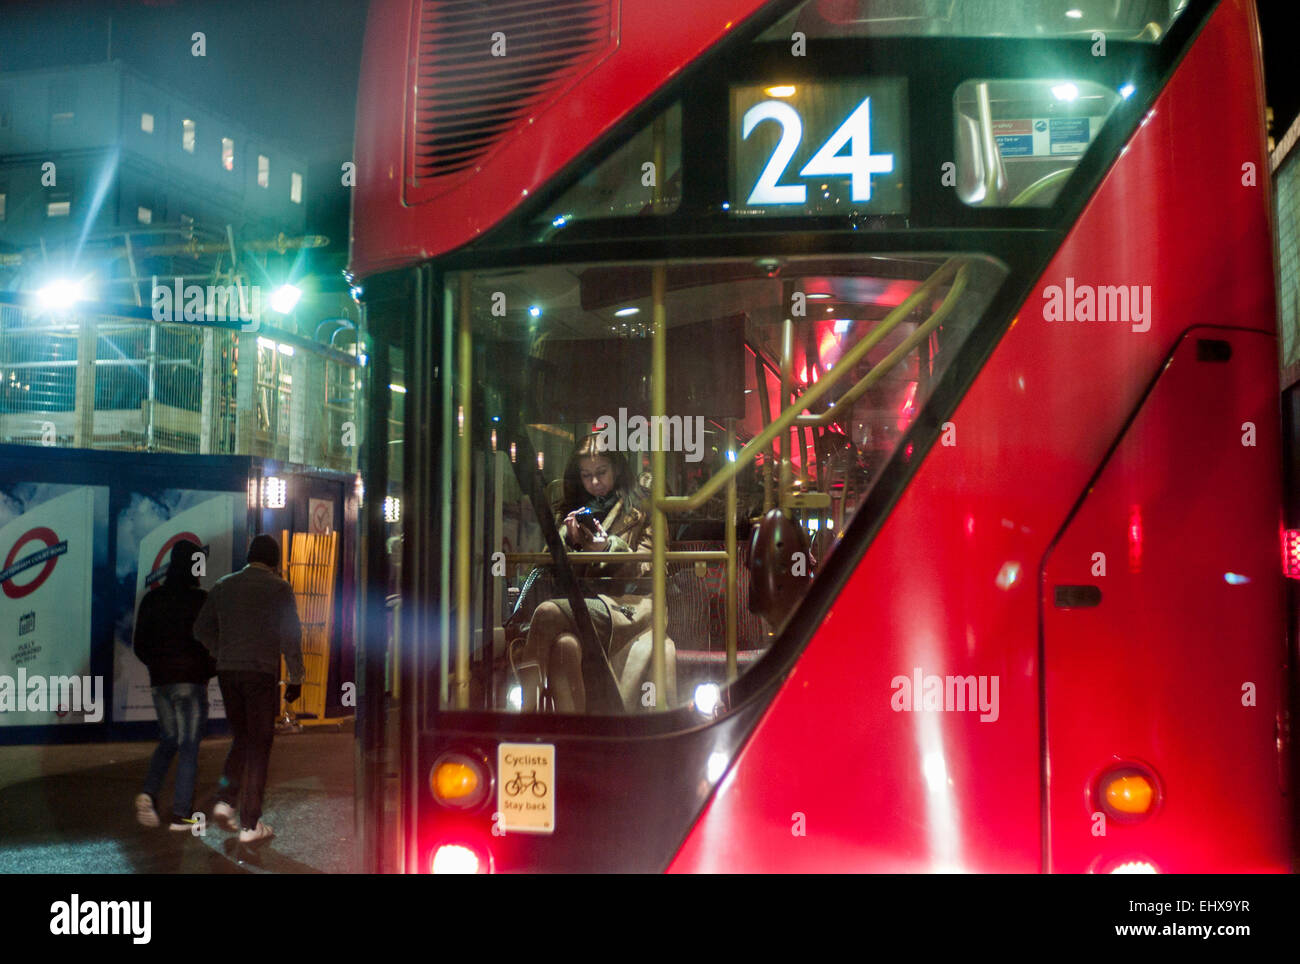 Routemaster Thomas Heatherwick's London's Hop-on, hop-off red double-decker bus at night - Stock Image